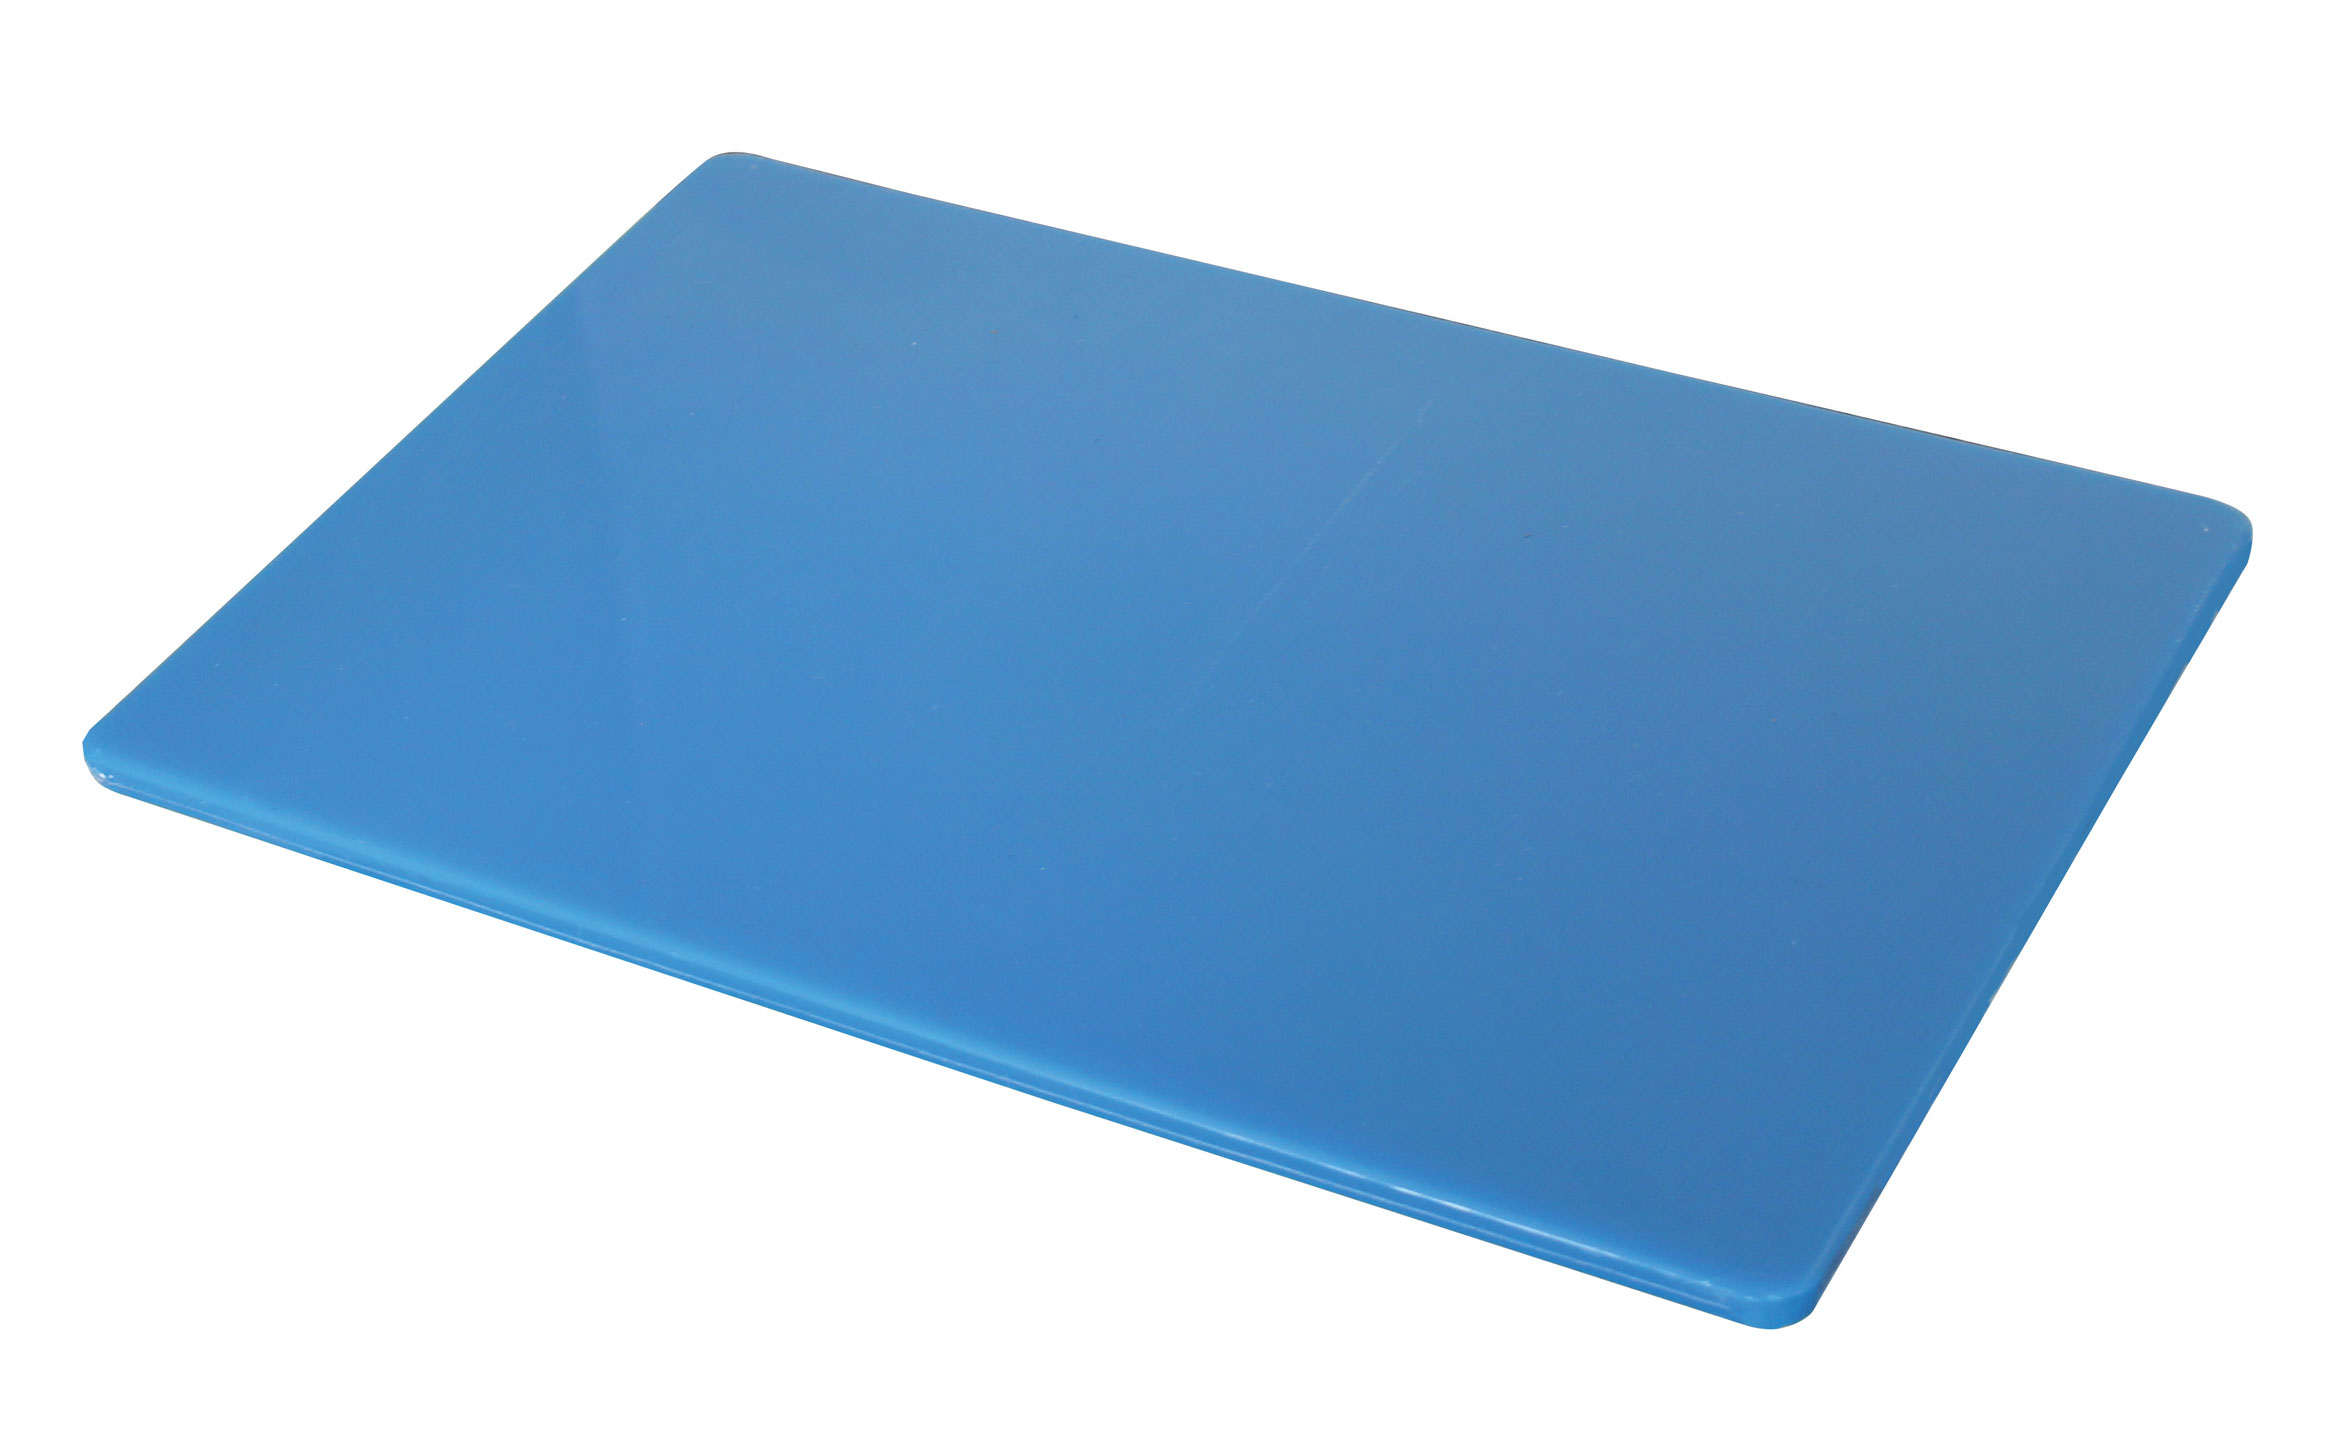 Blue High Density Large Size C hopping Board 450 x 600 x 12.7 mm